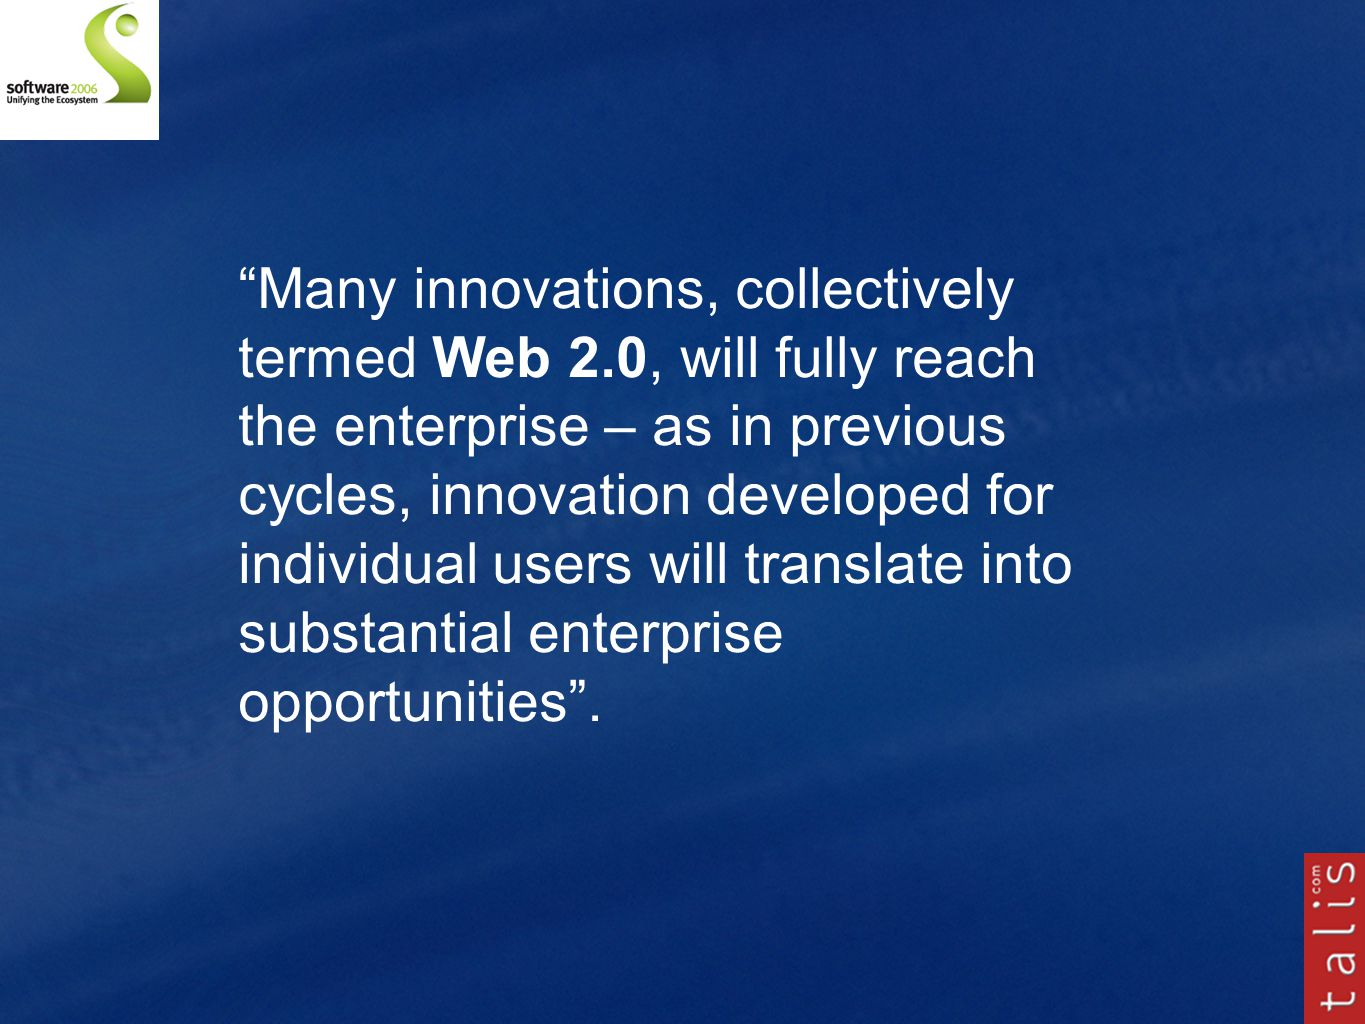 Many innovations, collectively termed Web 2.0, will fully reach the enterprise – as in previous cycles, innovation developed for individual users will translate into substantial enterprise opportunities .